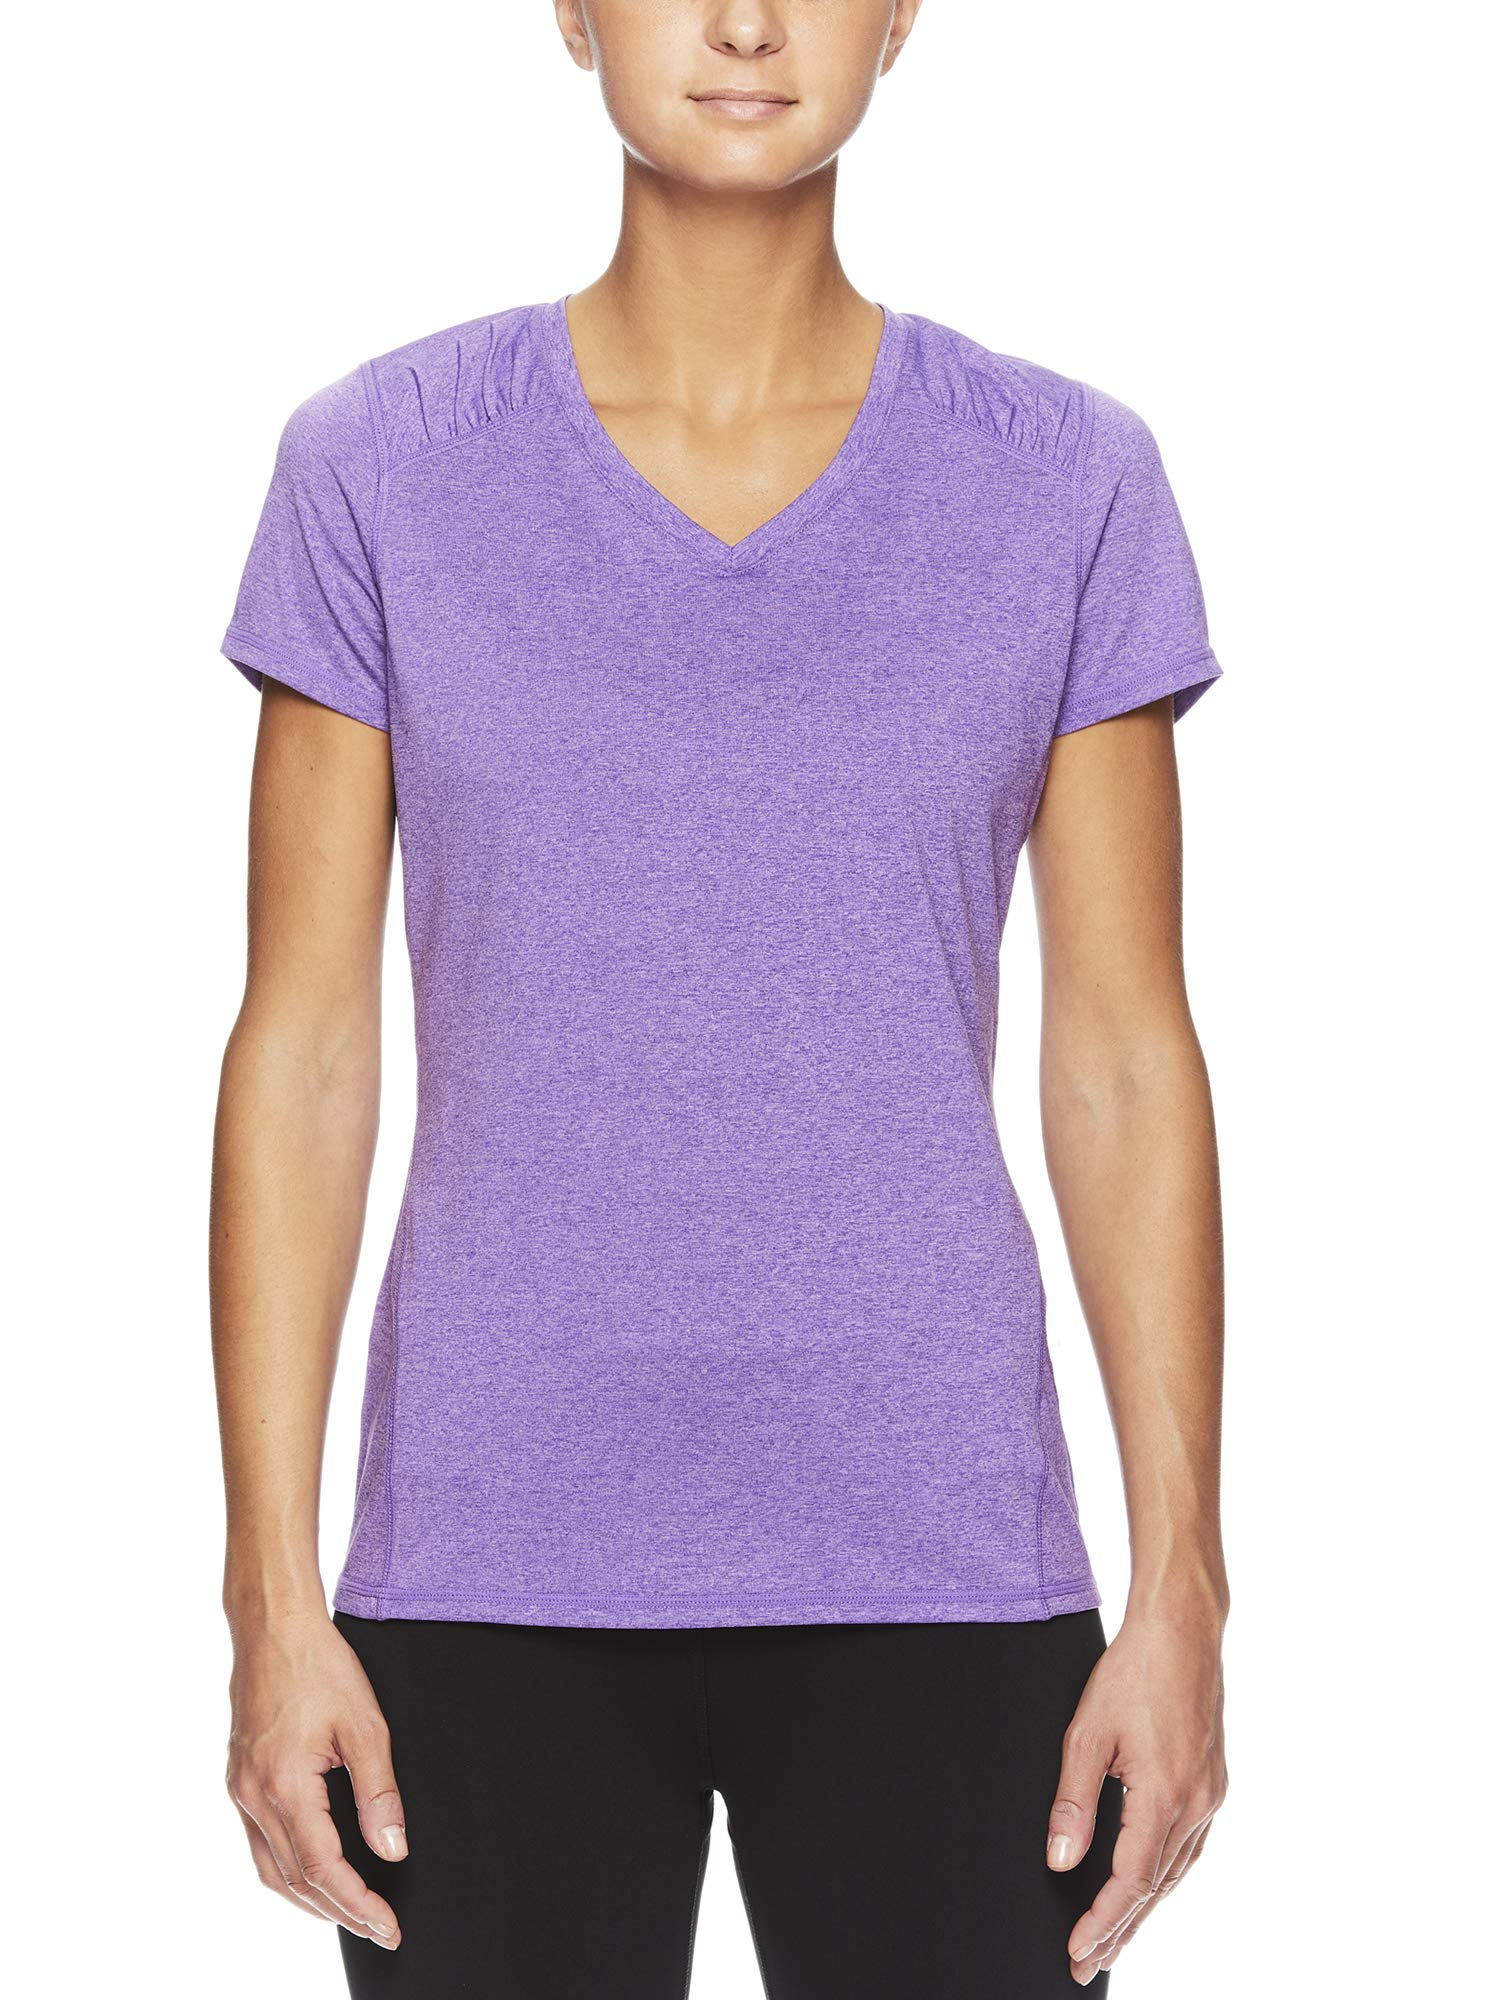 HEAD Women's Brianna Shirred Short Sleeve Workout T-Shirt - Marled Performance Crew Neck Activewear Top - Brianna Chive Blossom Heather, X-Small